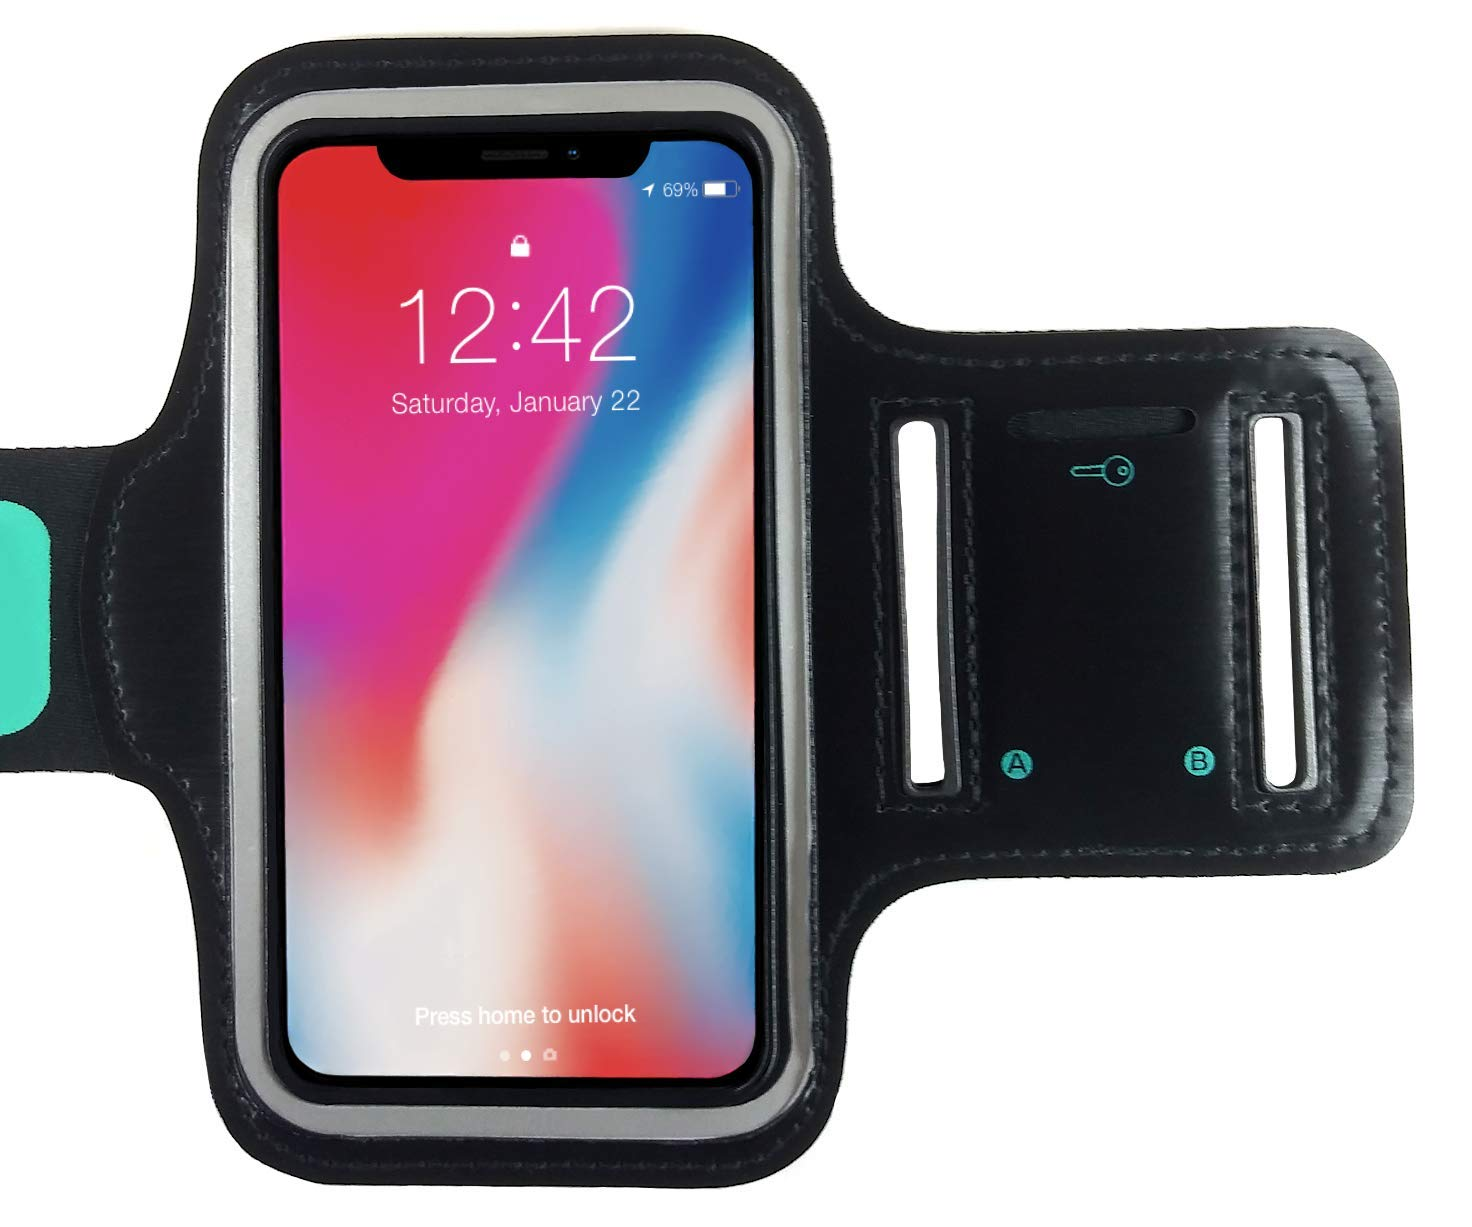 TRONWIRE Water Resistant Cell Phone Armband Case with Adjustable Elastic Band & Key Holder for Running, Walking, Hiking for iPhone 8, 7, 6, 6S, SE, 5, 5C, 5S